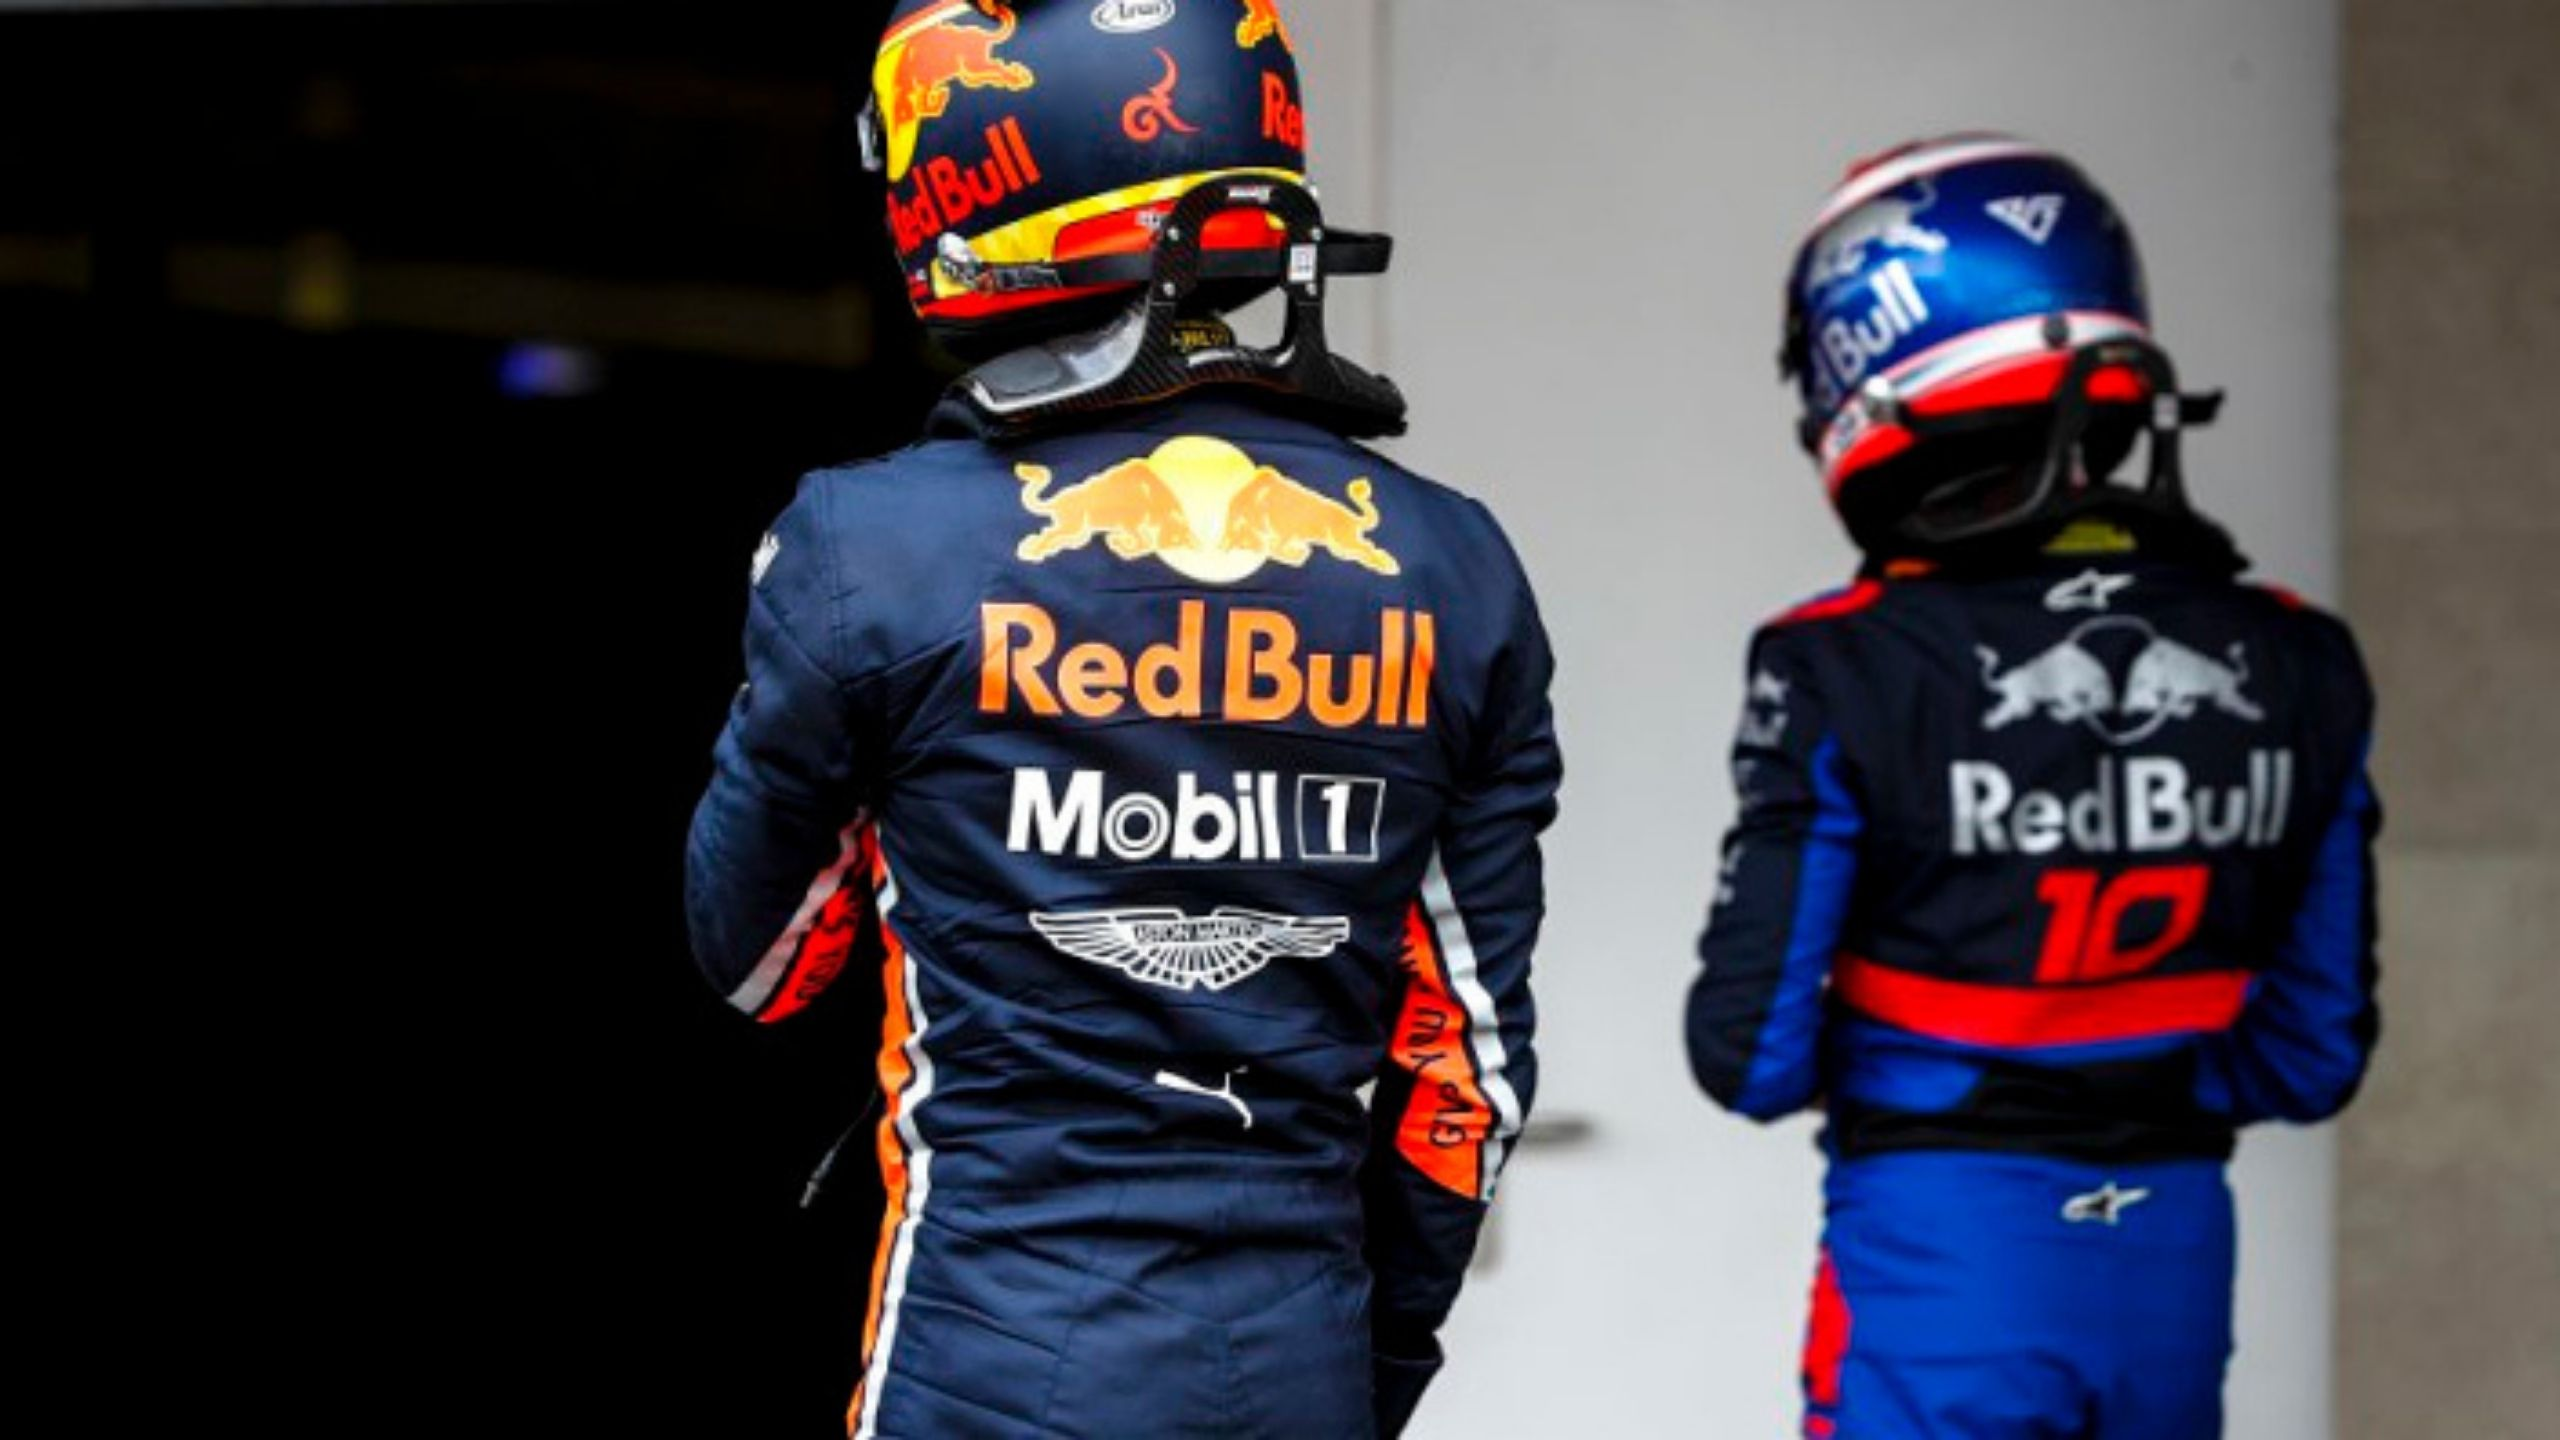 """""""I think it'd be tough for any driver to currently go up against Max"""" - Red Bull F1 boss Christian Horner defends Alex Albon in battle vs Max Verstappen"""